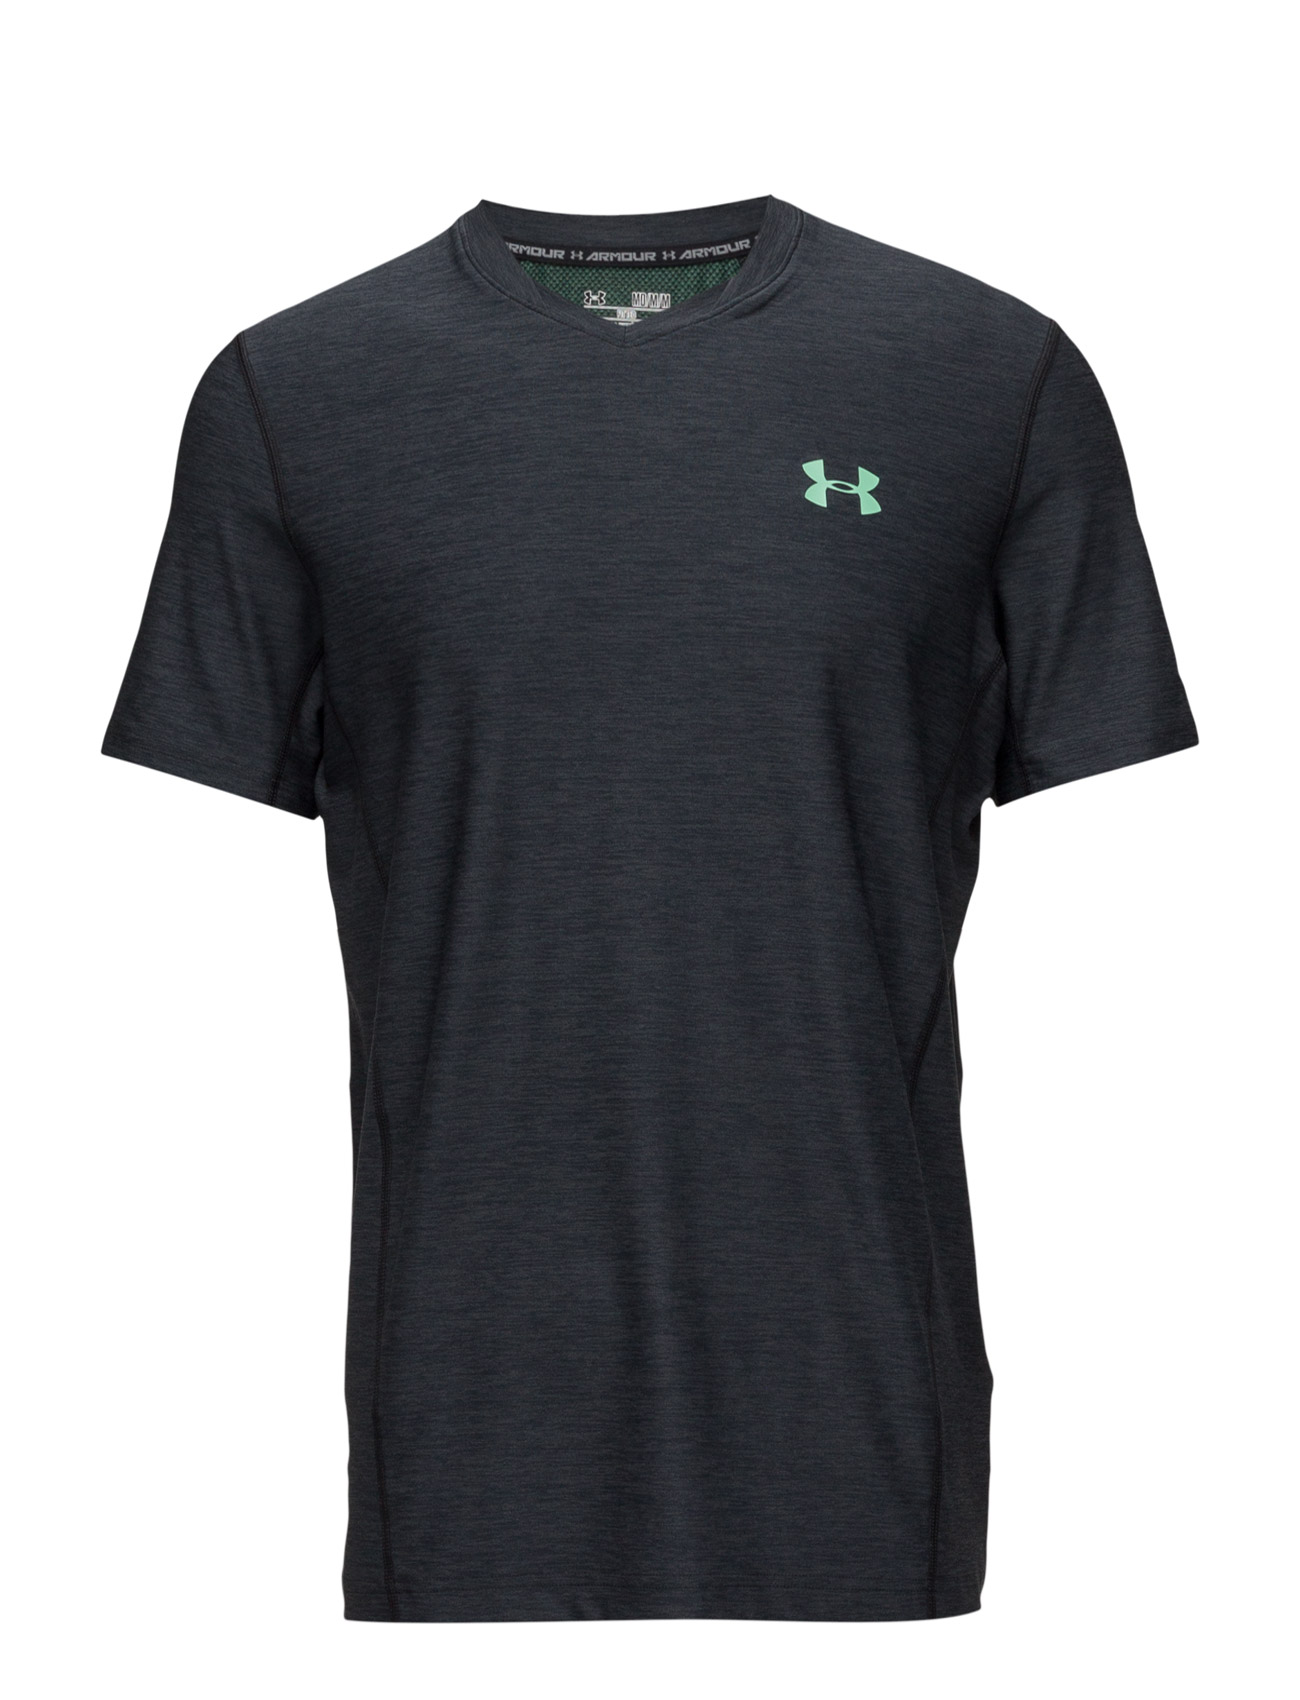 Supervent Fitted Ss Under Armour Løbe t-shirts til Herrer i Sort